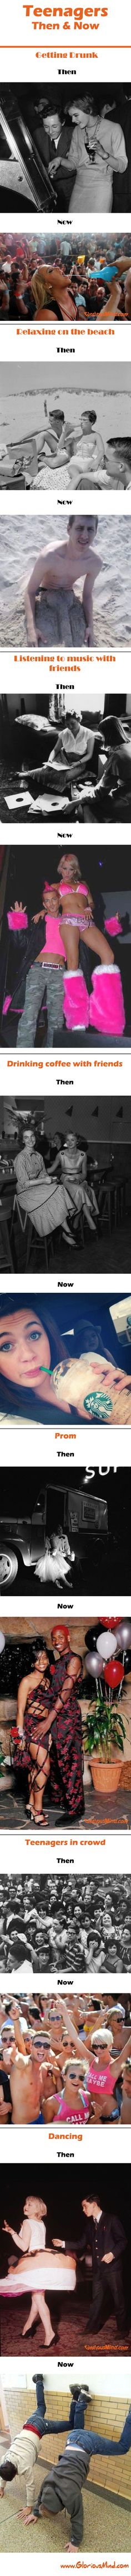 Teenagers – Then and Now